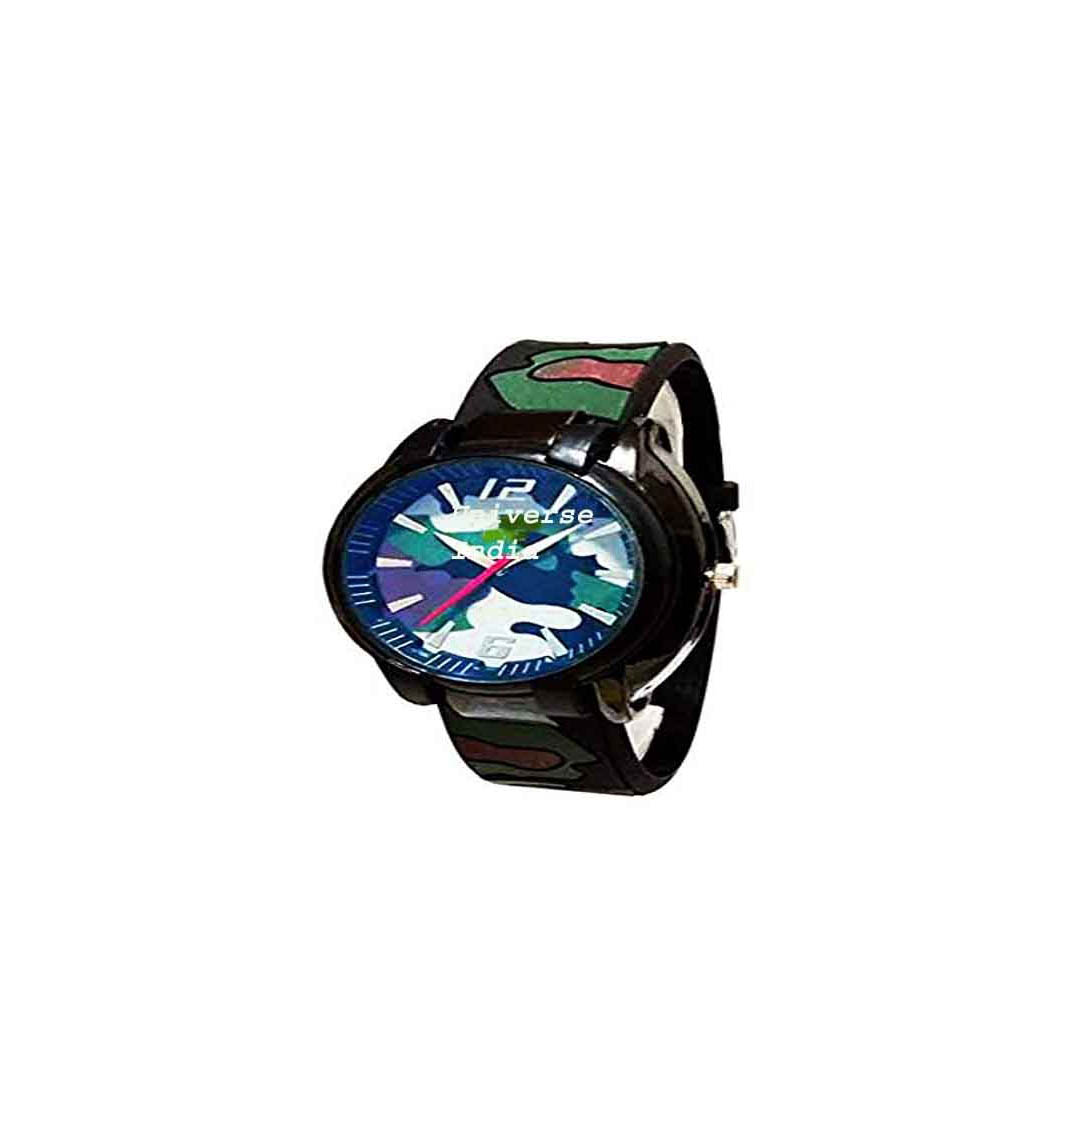 Army Wrist watch for men and children